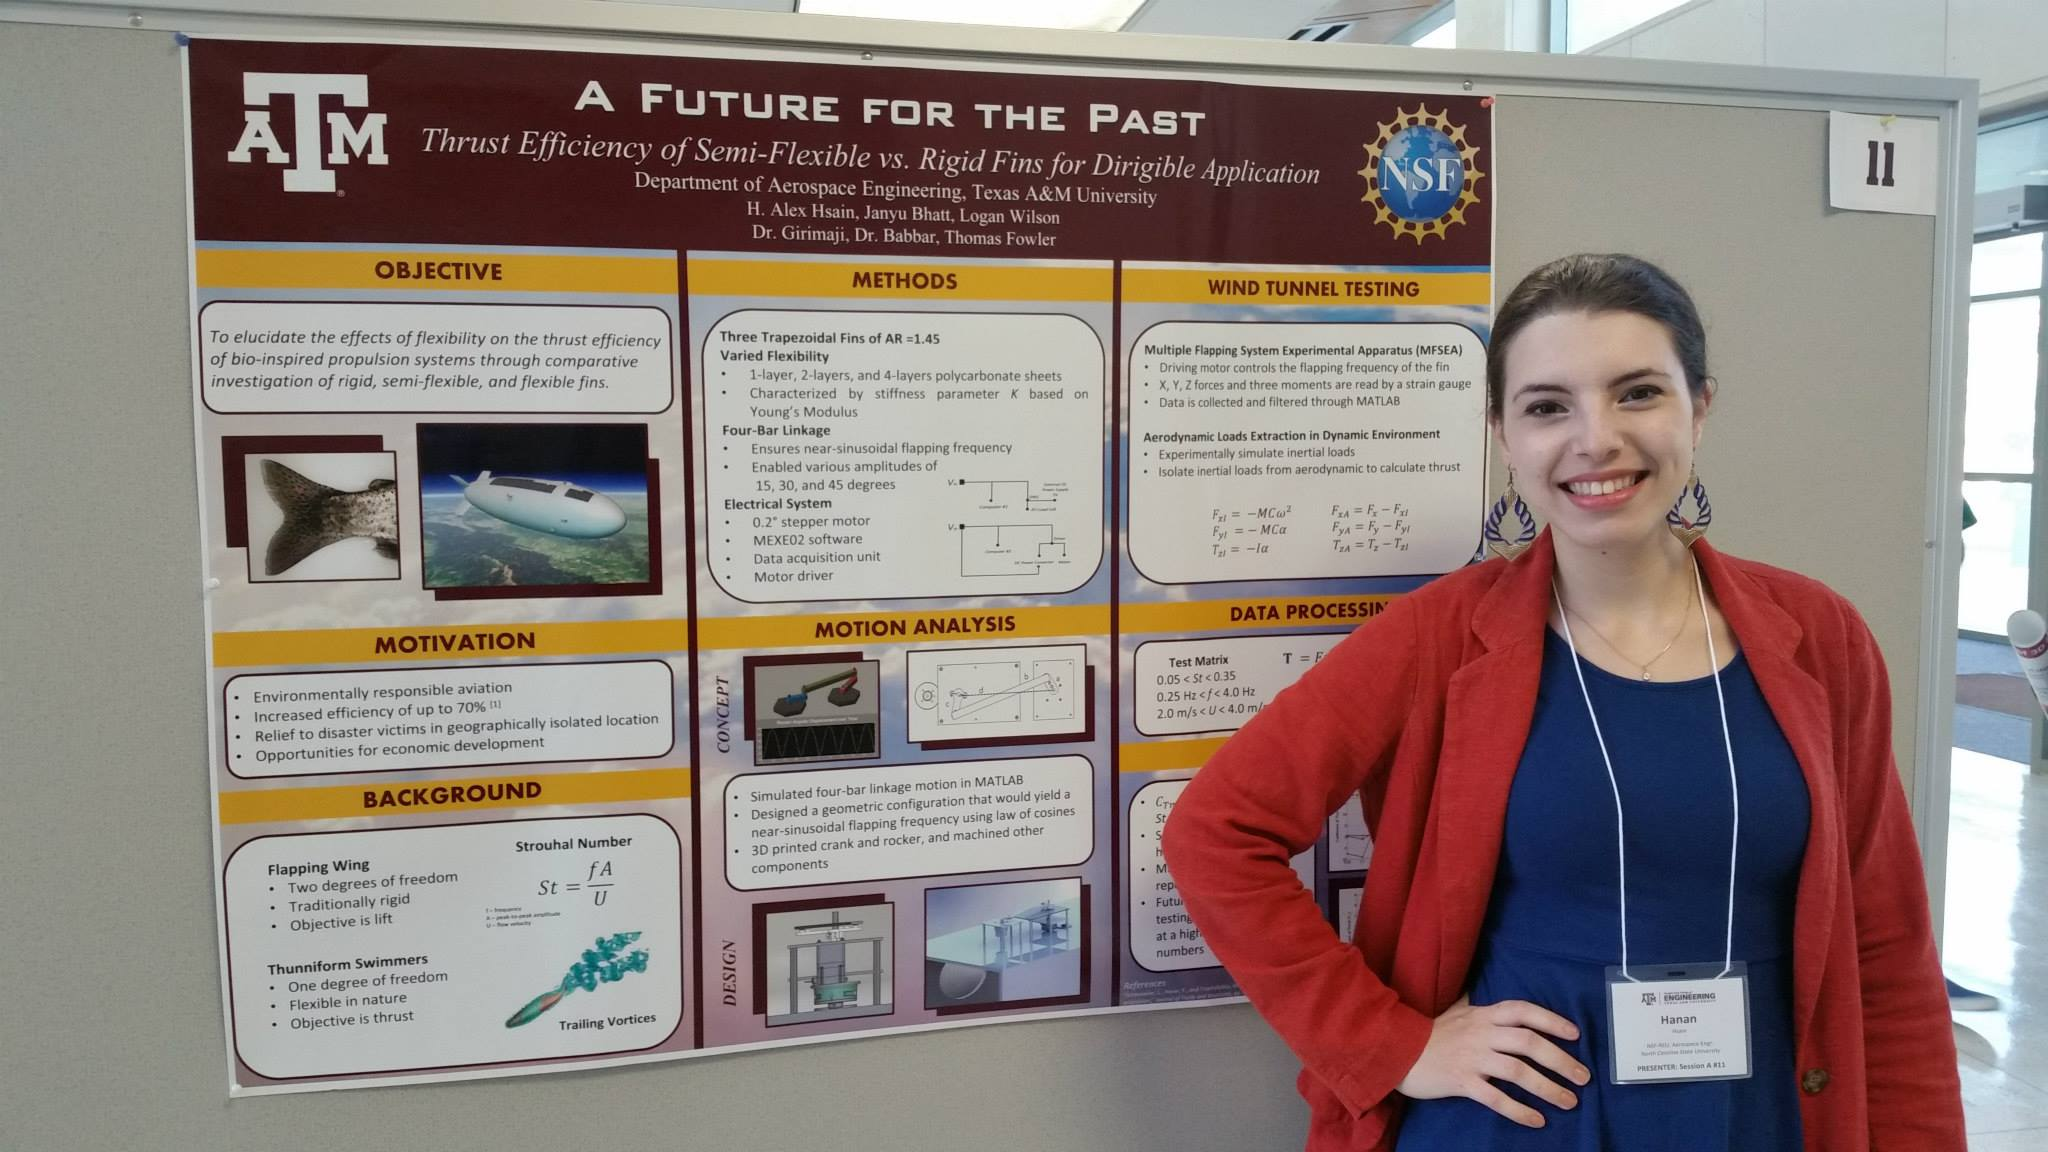 Presenting my first (ever) research poster at the summer symposium in August 2015.